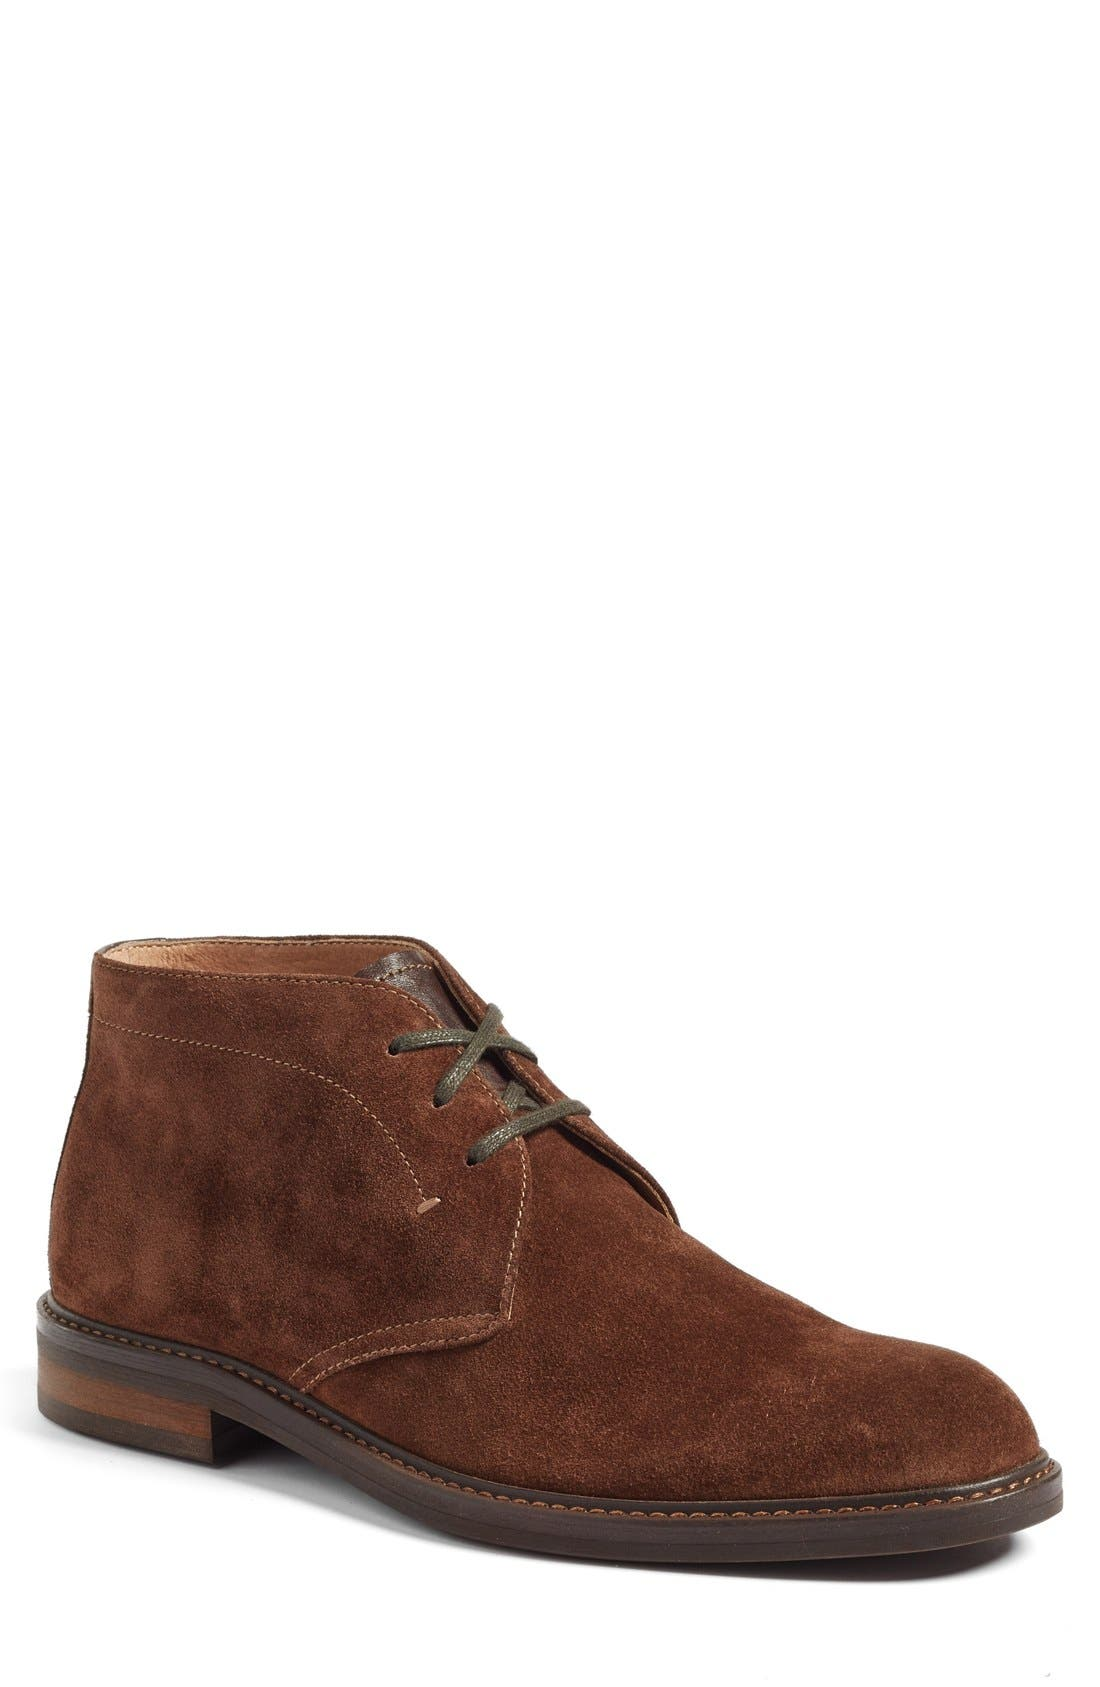 Alternate Image 1 Selected - 1901 Barrett Chukka Boot (Men)